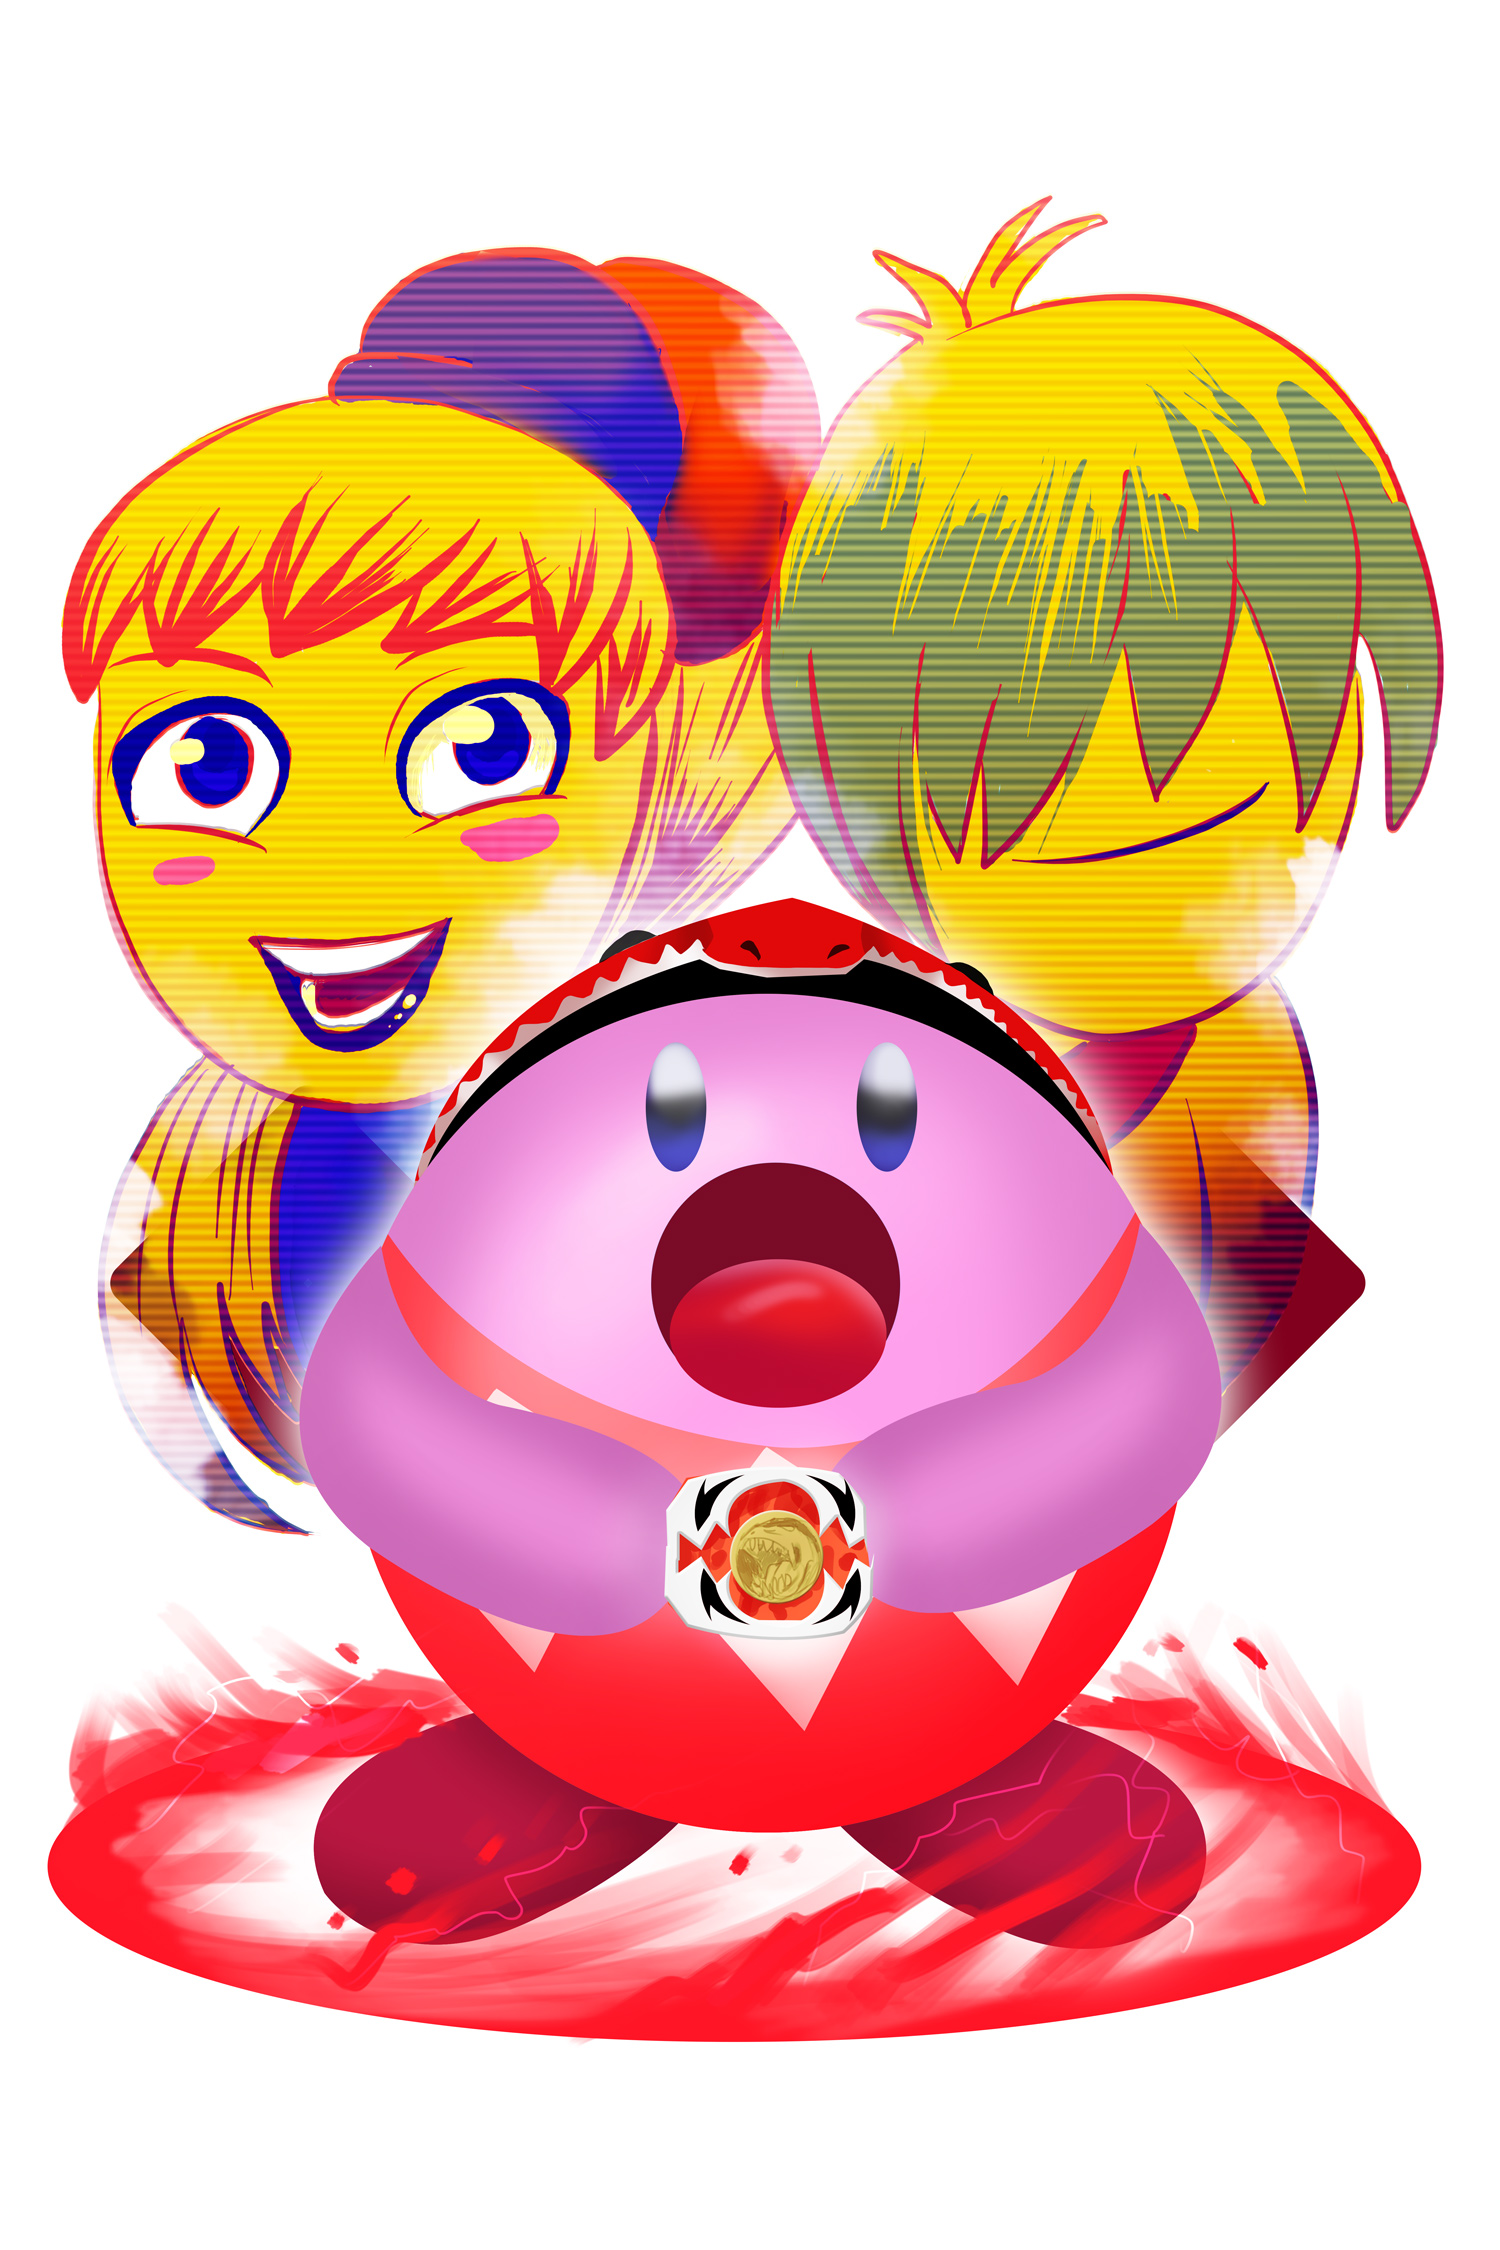 Kirby- Red power ranger